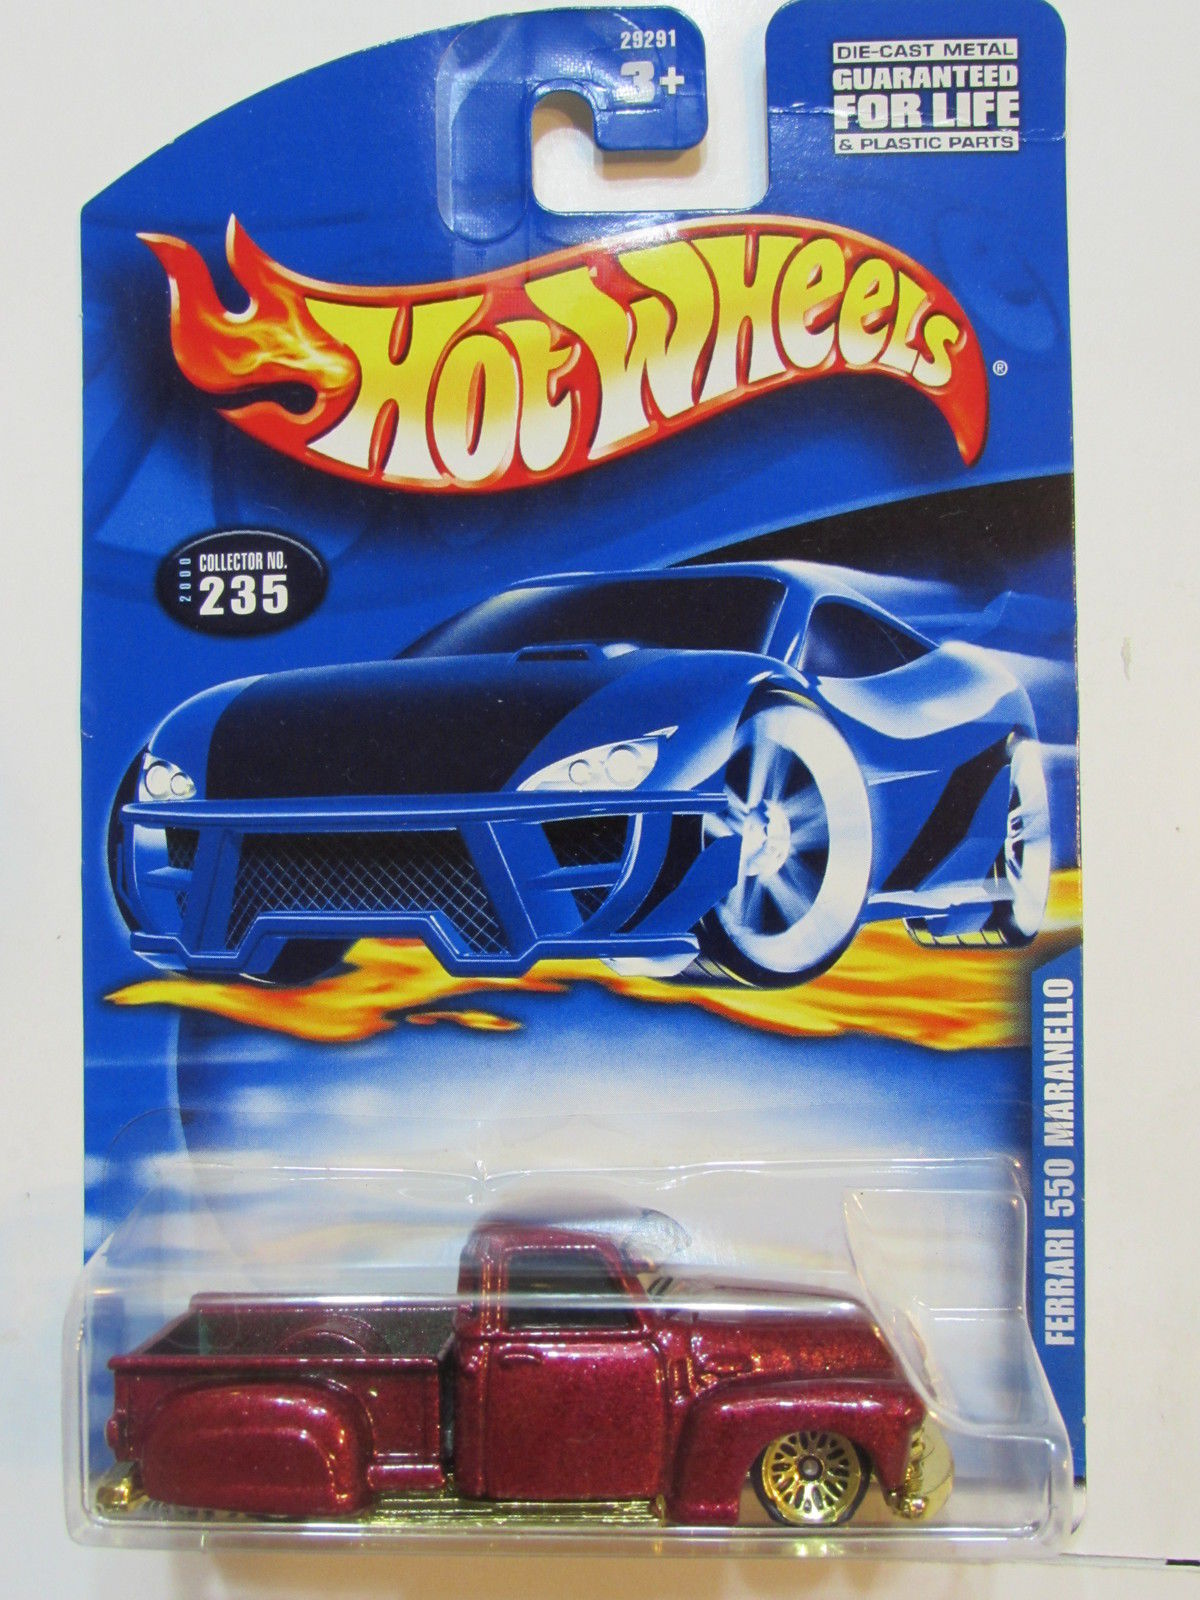 HOT WHEELS 2000 LA TROCA ON FERRARI 550 MARANELLO CARD ERROR